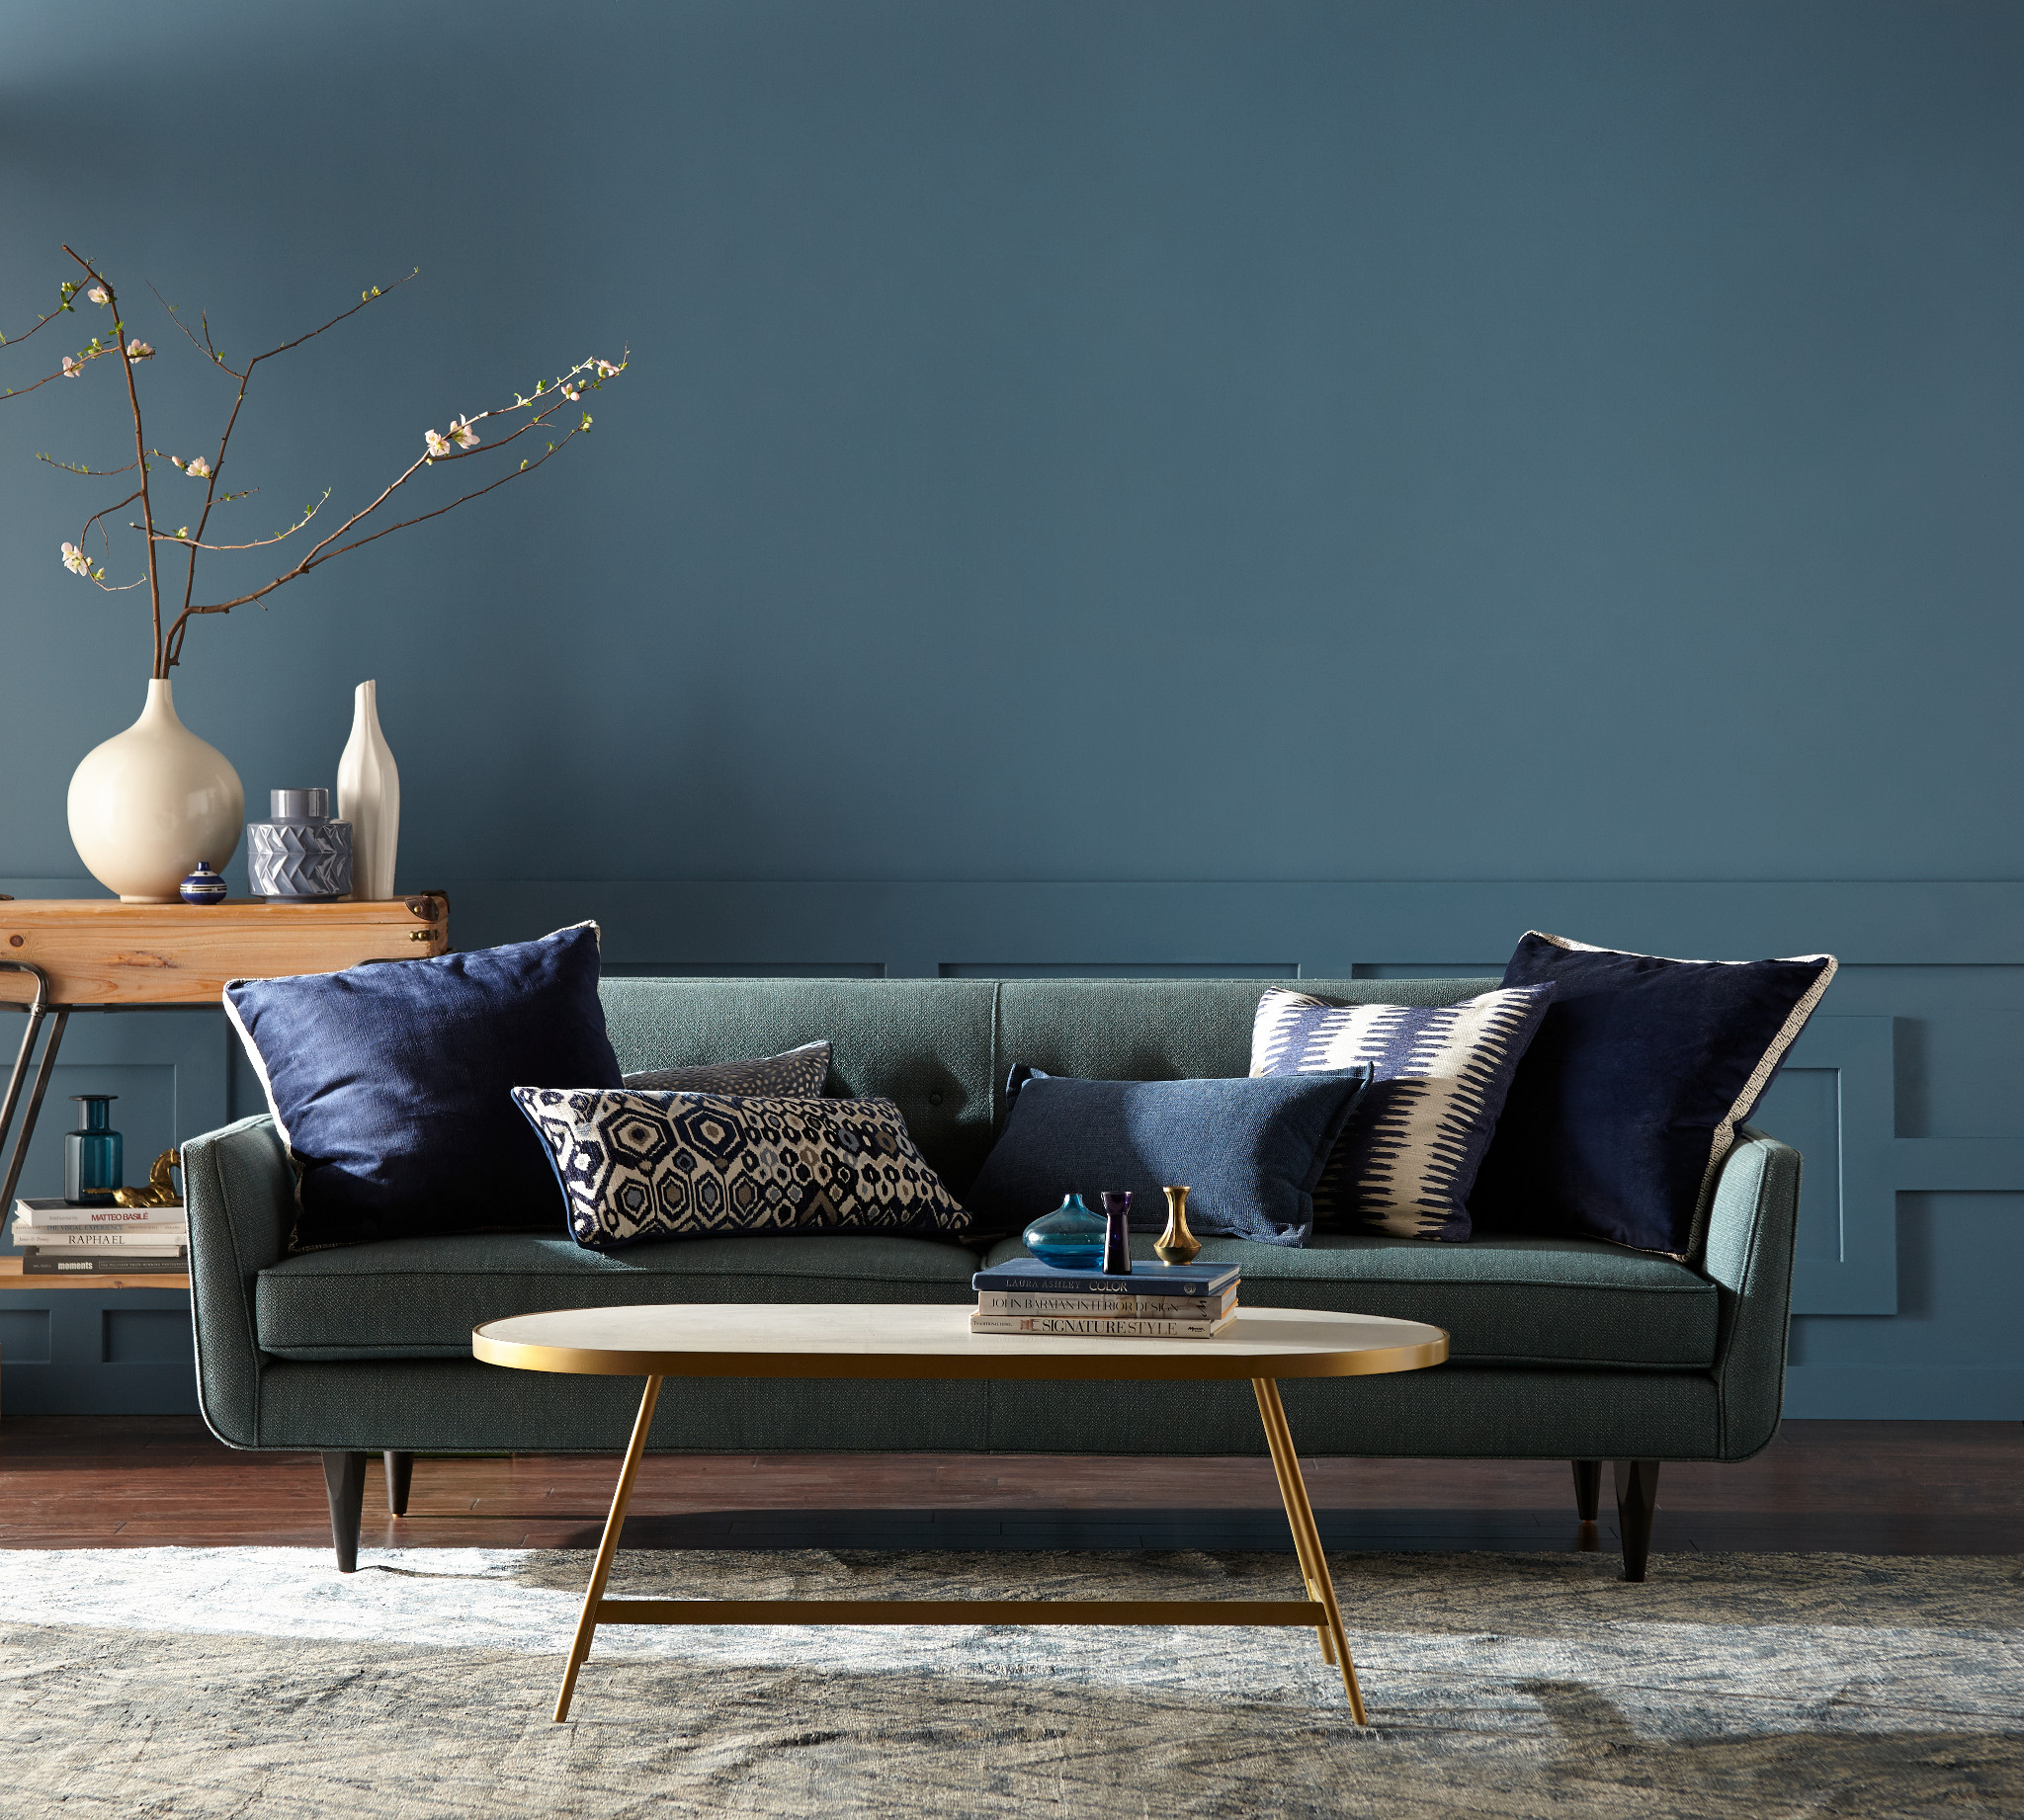 behr paint\u0027s 2019 color of the year is blueprint, and it\u0027s so chicbehr just announced its 2019 color of the year, and you\u0027re going to love it